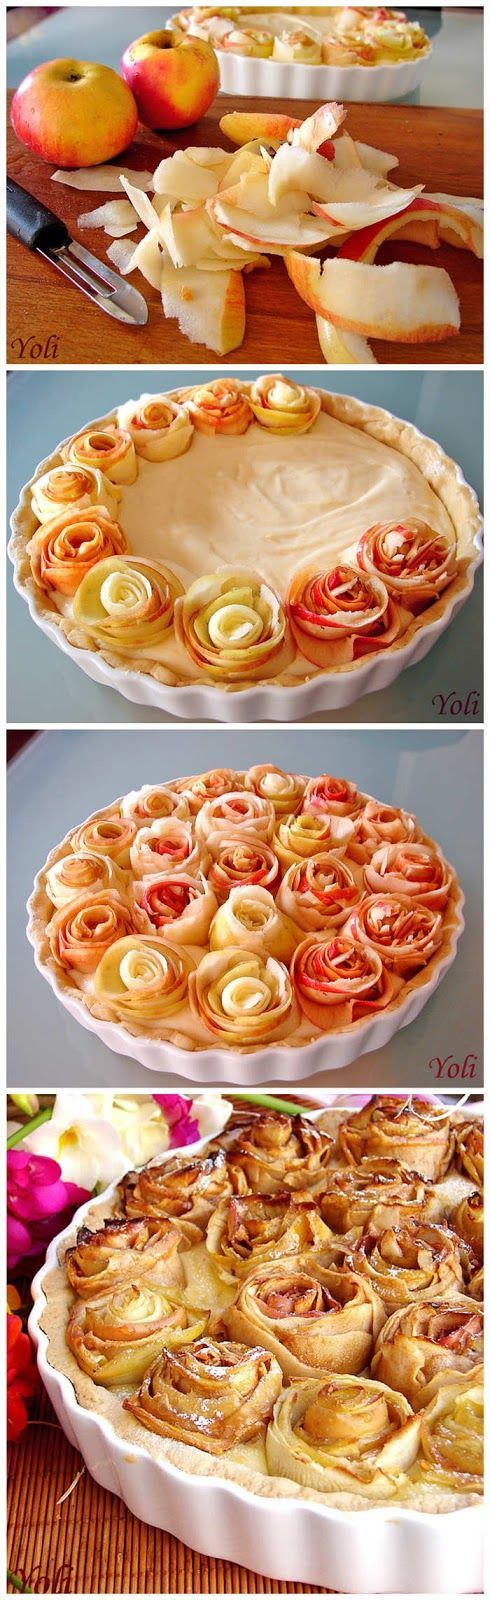 joysama images: Apple pie with roses: